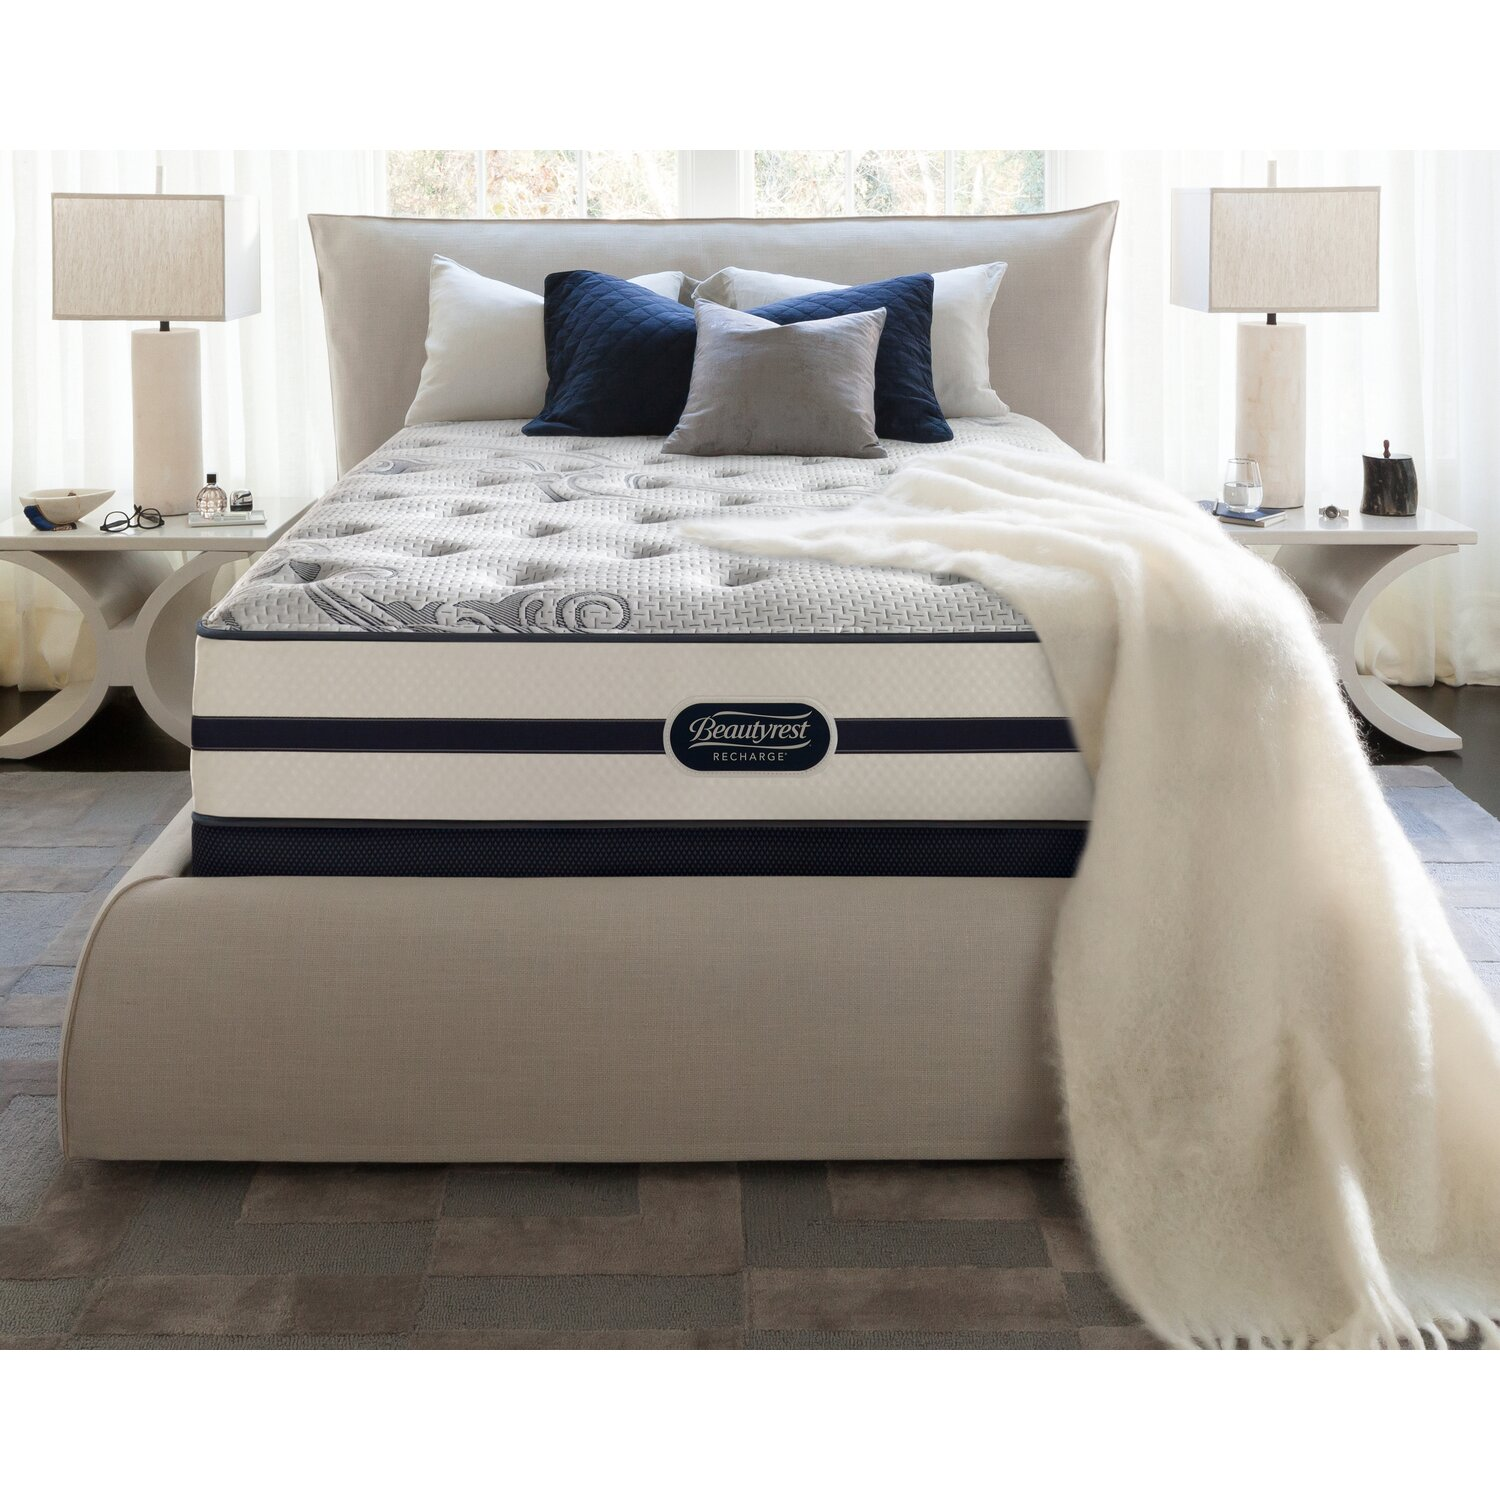 Price Compare Waterproof Cover And Classic Comfort Pillow Included With Cal-King 4 Inch Soft Sleeper 6.8 Visco Elastic Memory...